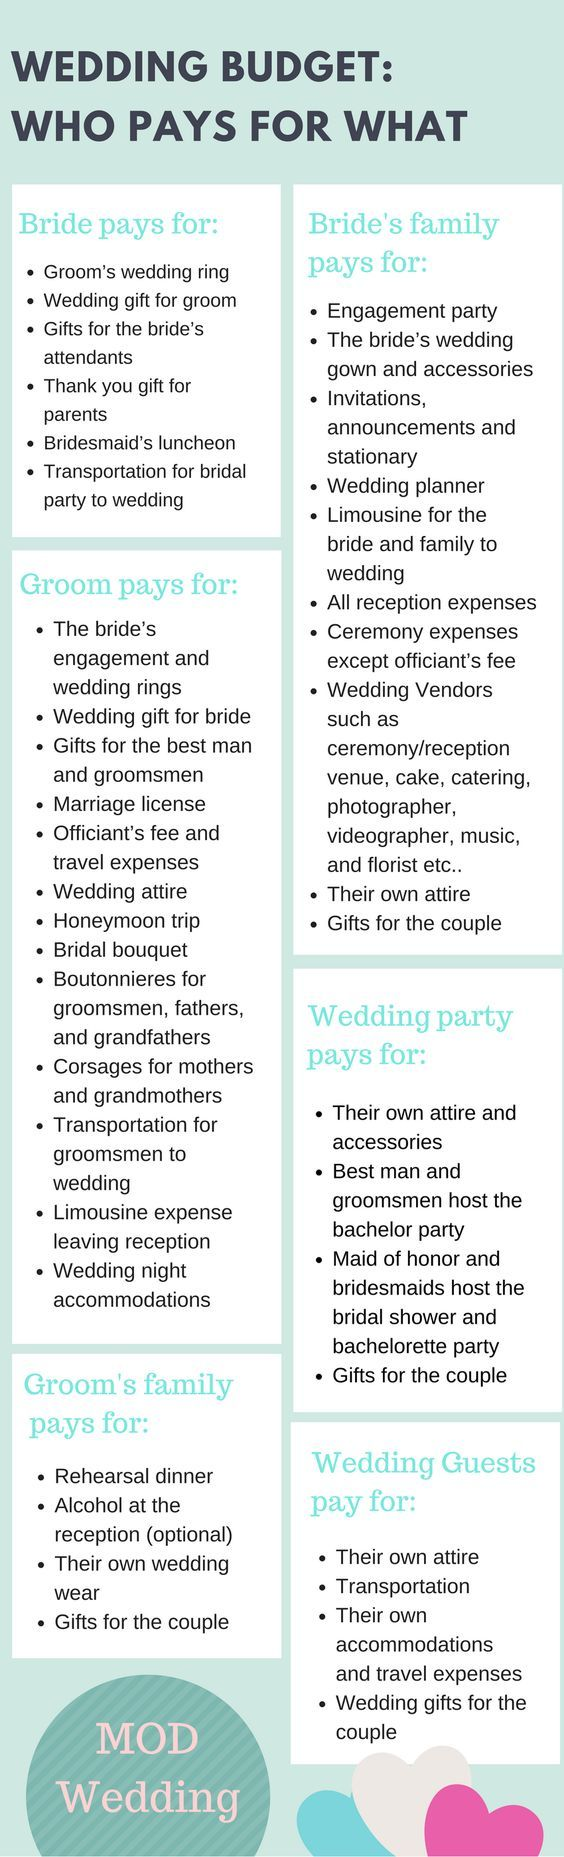 plan your wedding tips for a wonderful day etiquette outlines